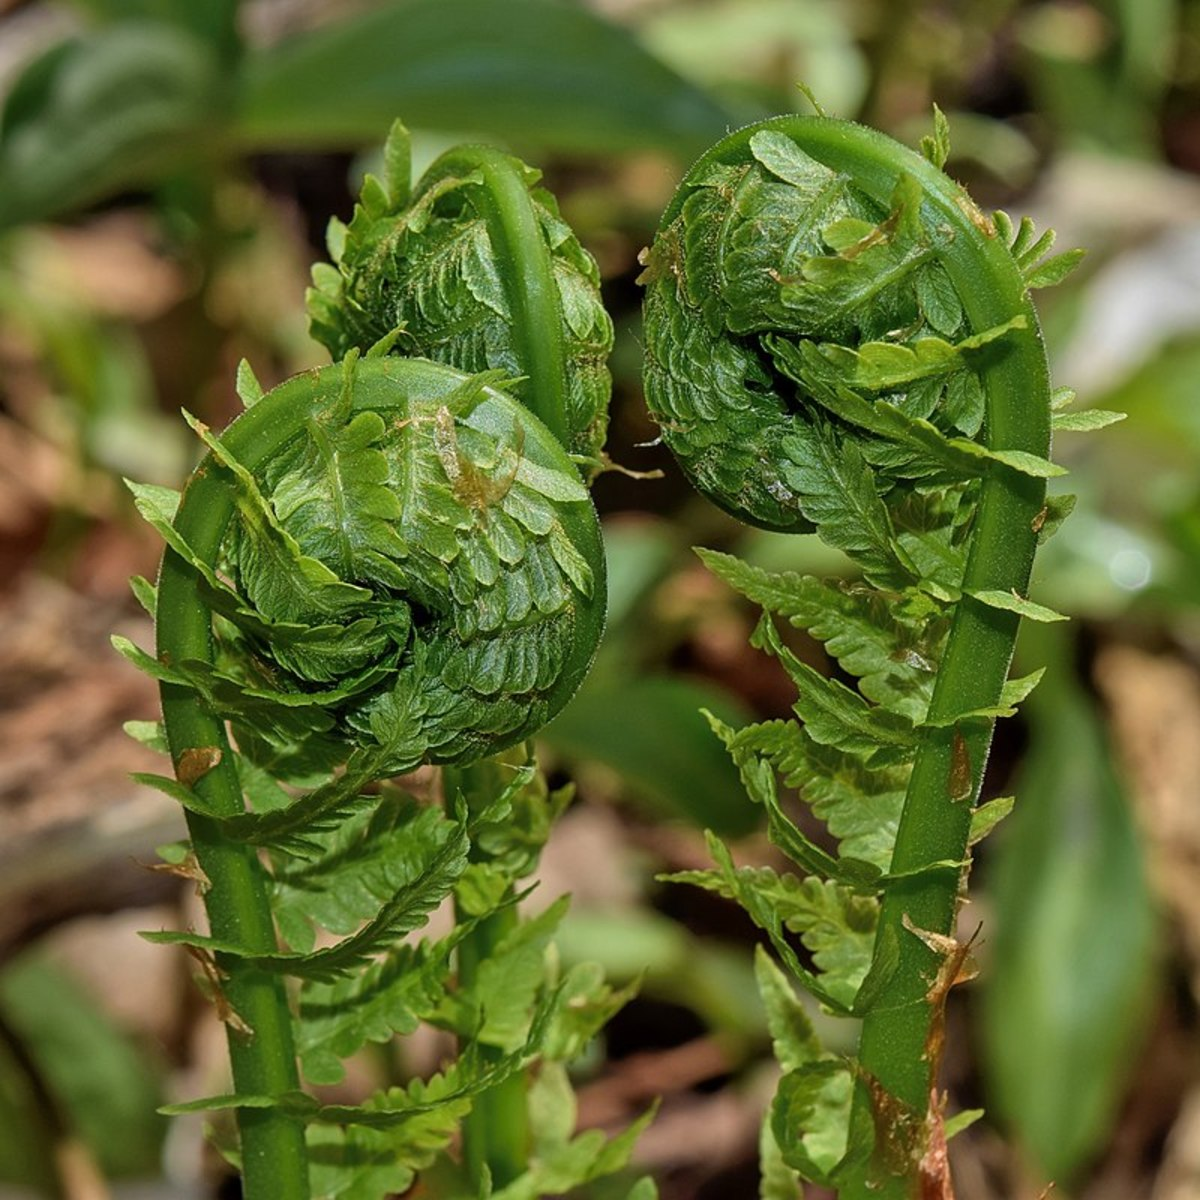 The sterile fronds emerge in the spring as fiddleheads which are edible.